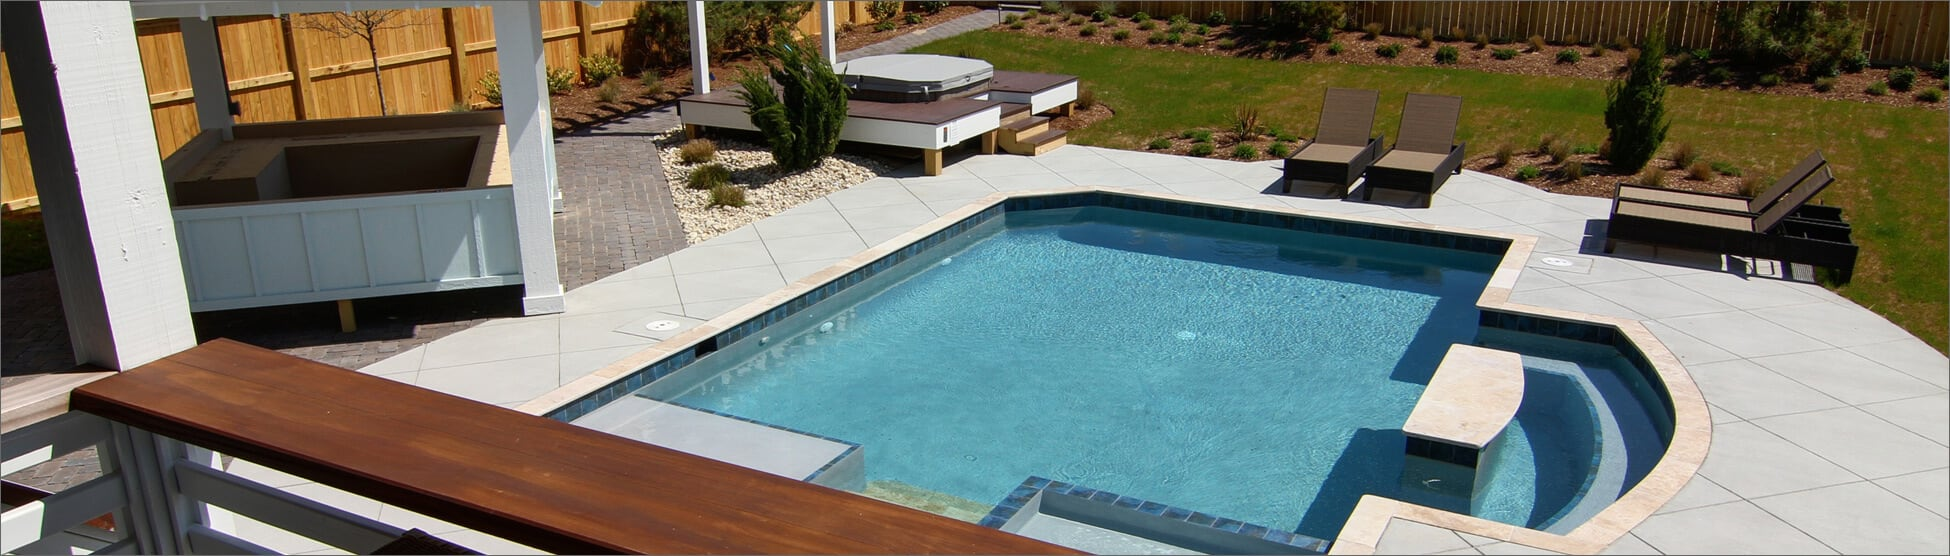 Vacation Rental Homes With Pool Kees Outer Banks Nc